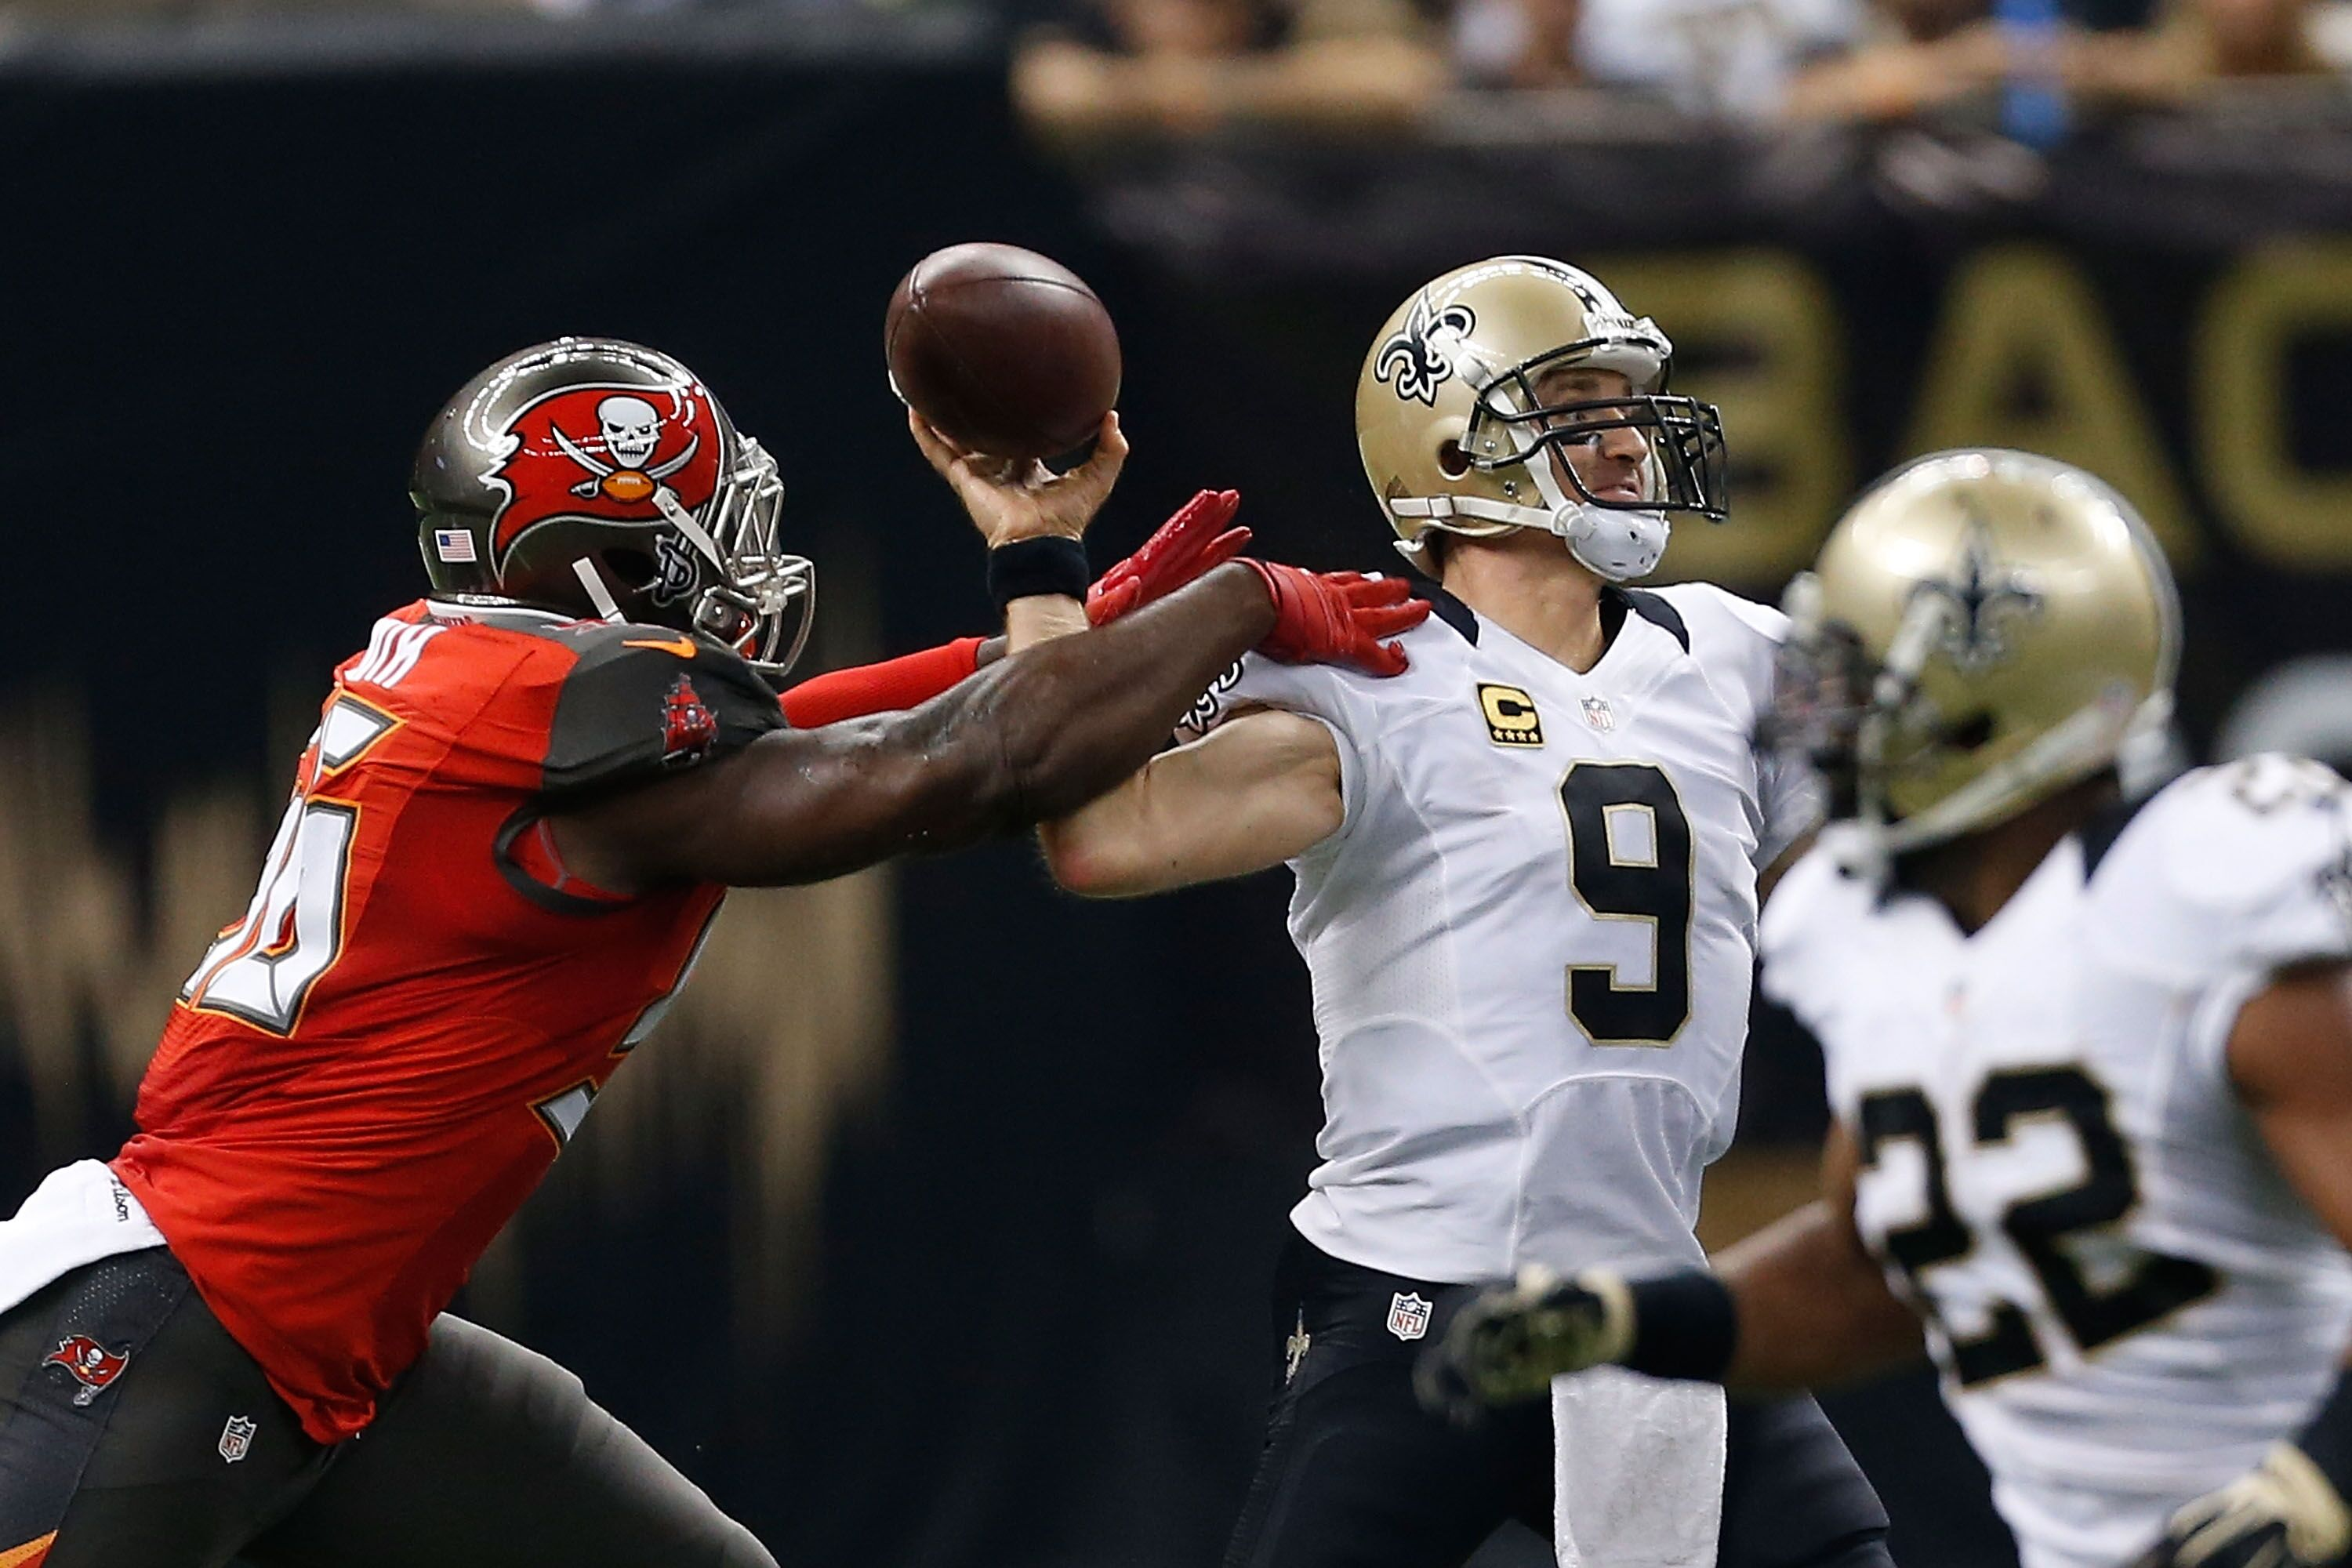 NEW ORLEANS, LA - SEPTEMBER 20: Drew Brees #9 of the New Orleans Saints is hit by Jacquies Smith #56 of the Tampa Bay Buccaneers during the first quarter of a game at the Mercedes-Benz Superdome on September 20, 2015 in New Orleans, Louisiana. </p>                 </div>             </div>          </div>                   <div class=